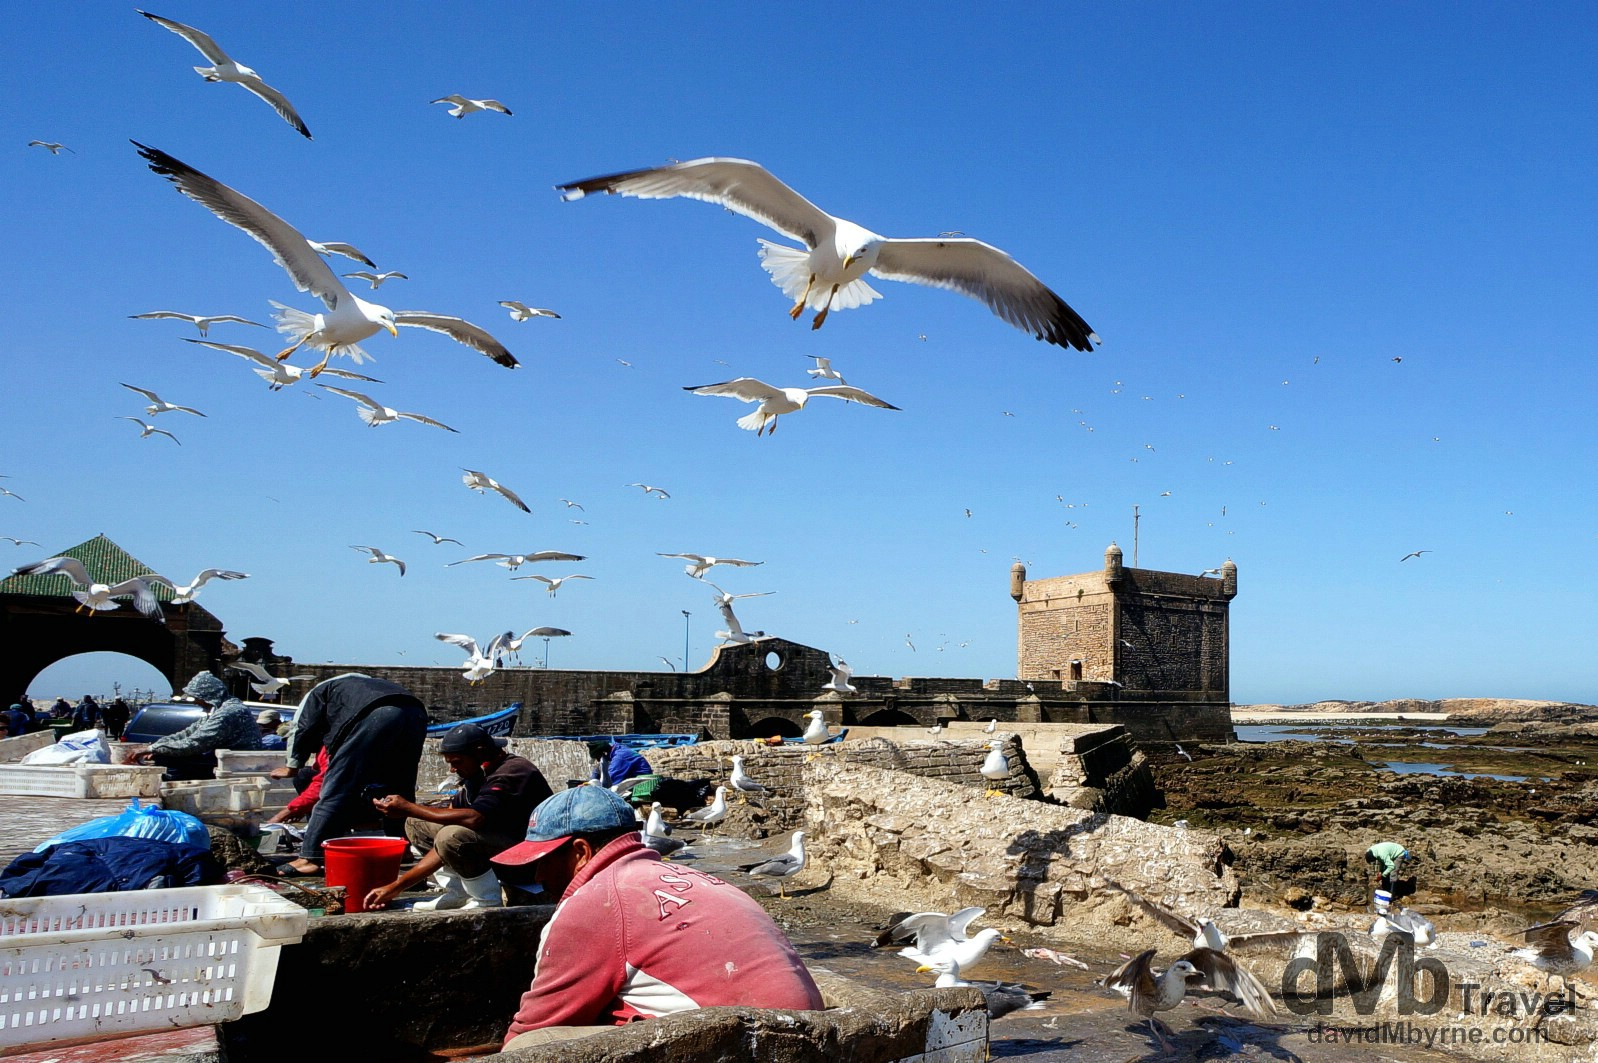 Gulls swooping overhead for remnants of fish being gutted in Essaouira, Morocco. May 3rd, 2014.